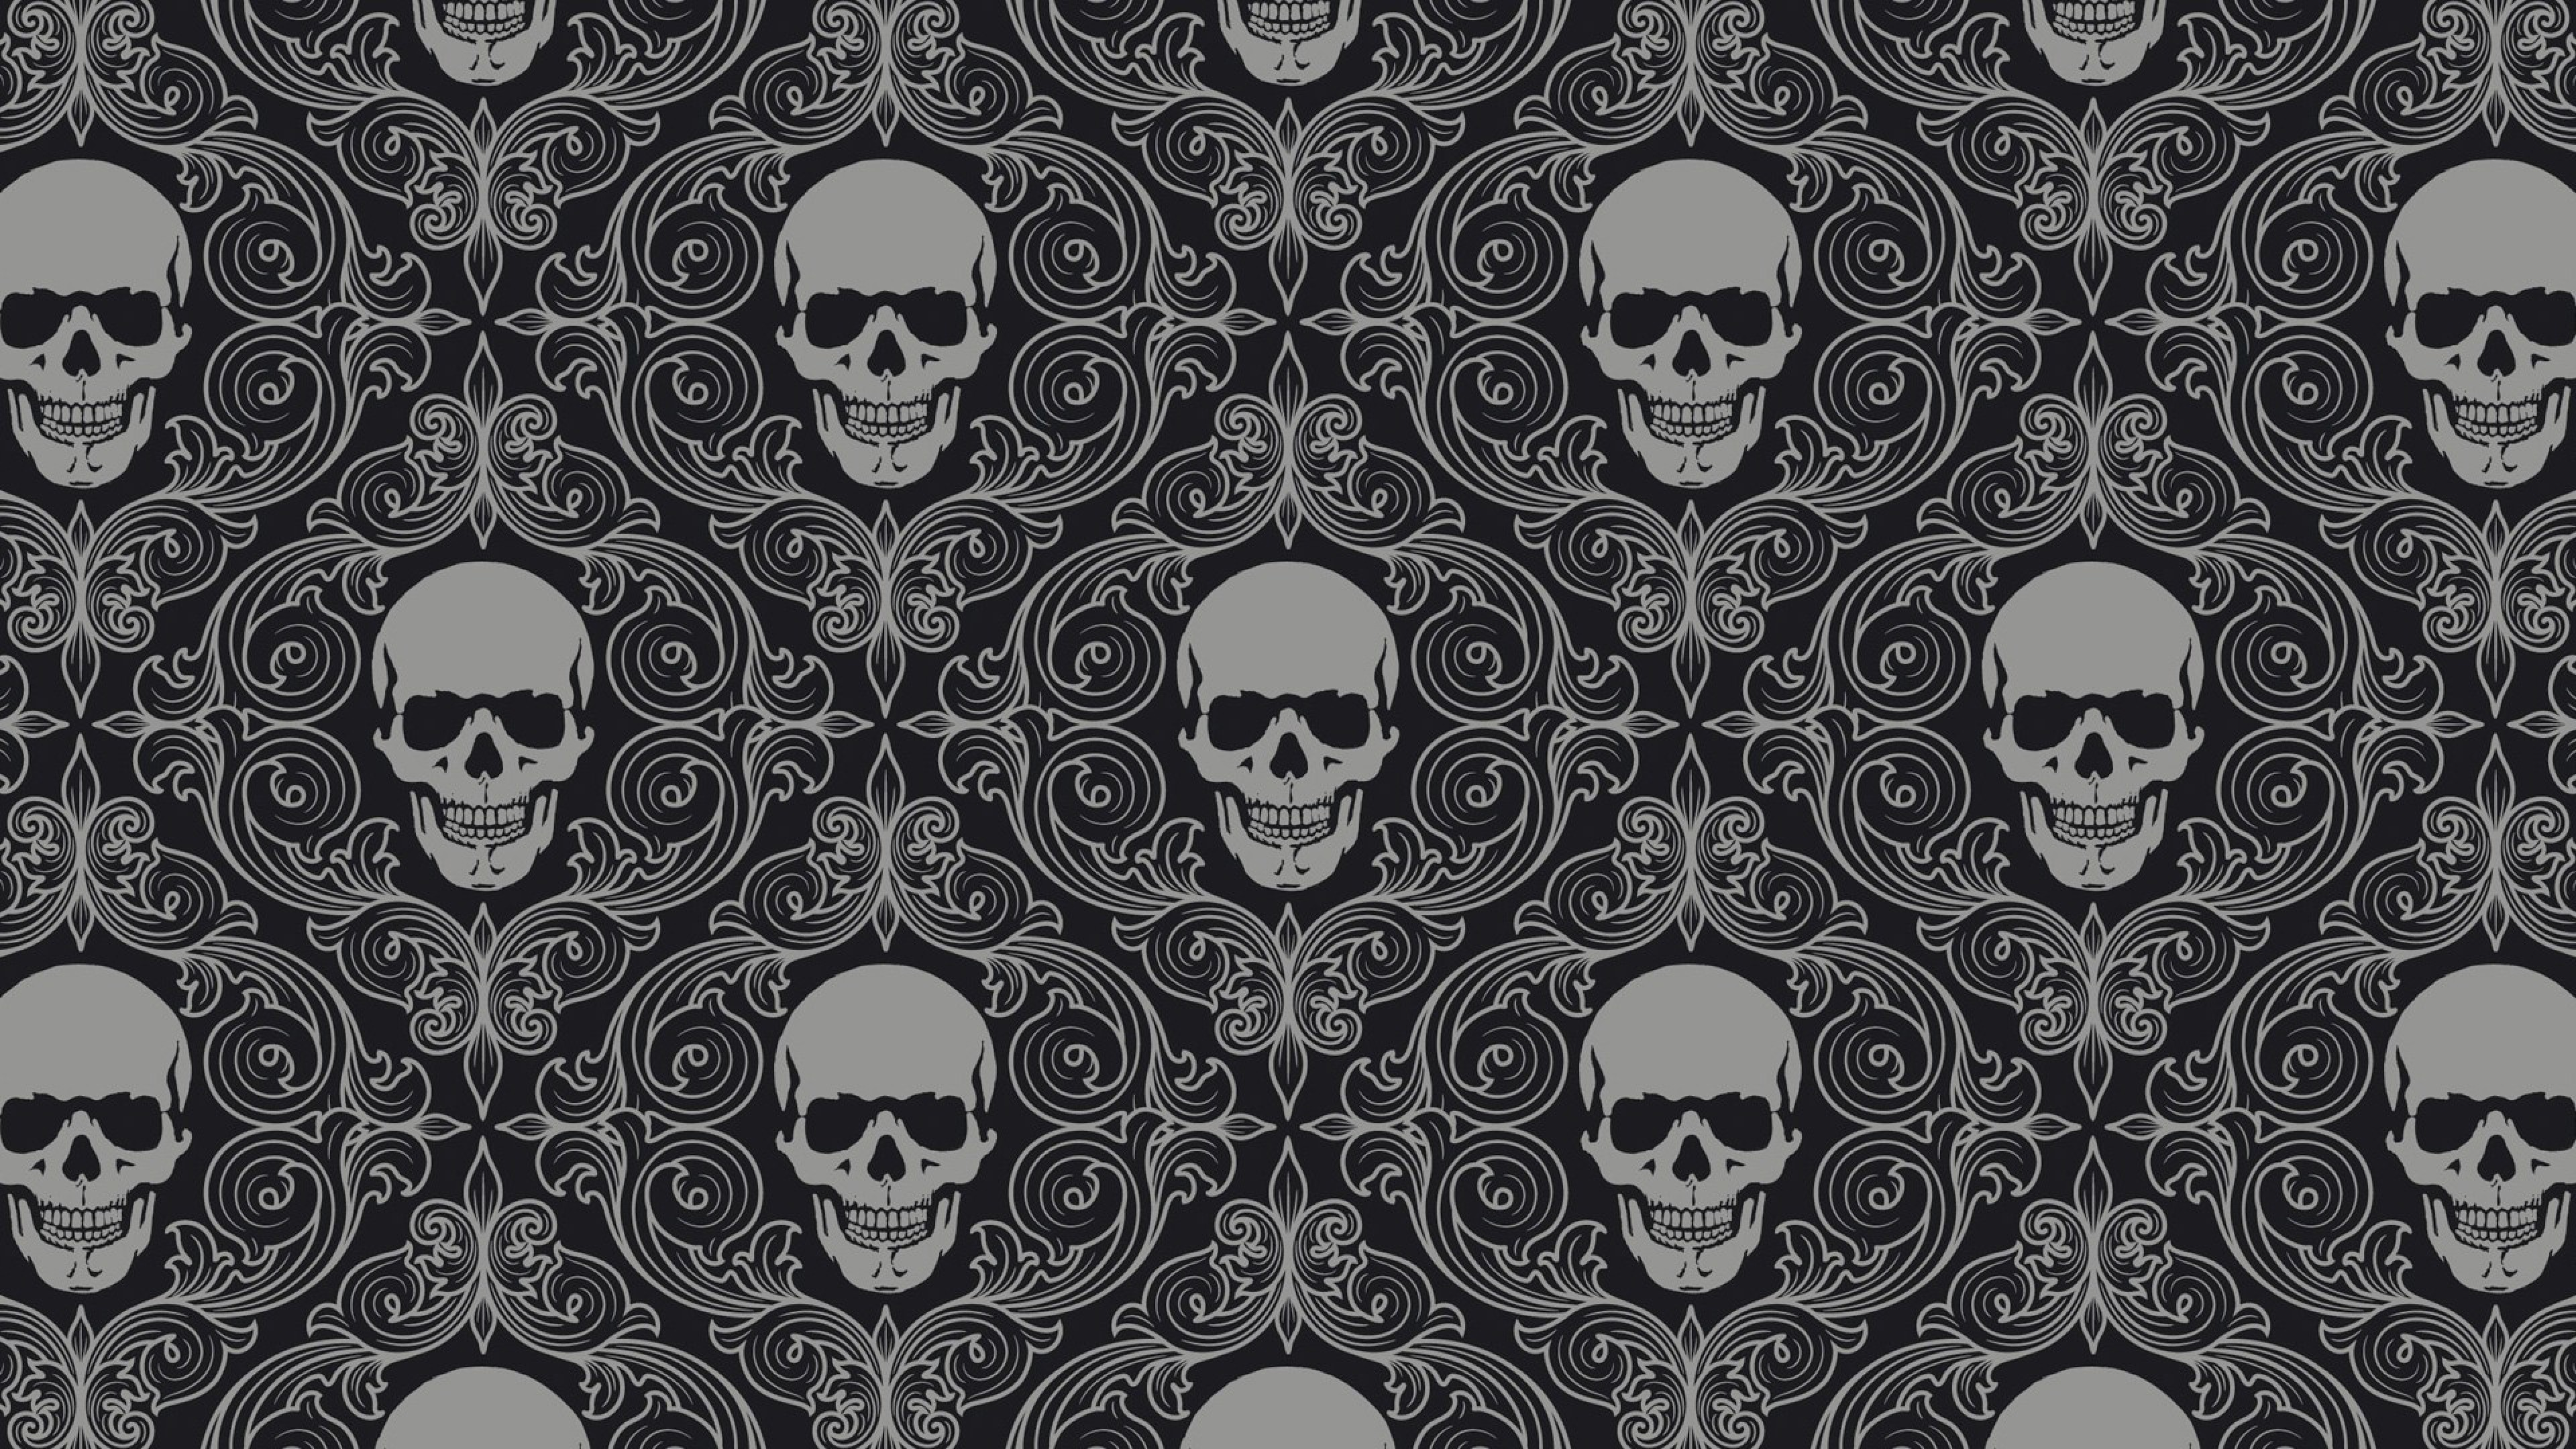 Skull background            Download free awesome High Resolution     4K Ultra HD Skull Wallpapers HD  Desktop Backgrounds 3840x2160